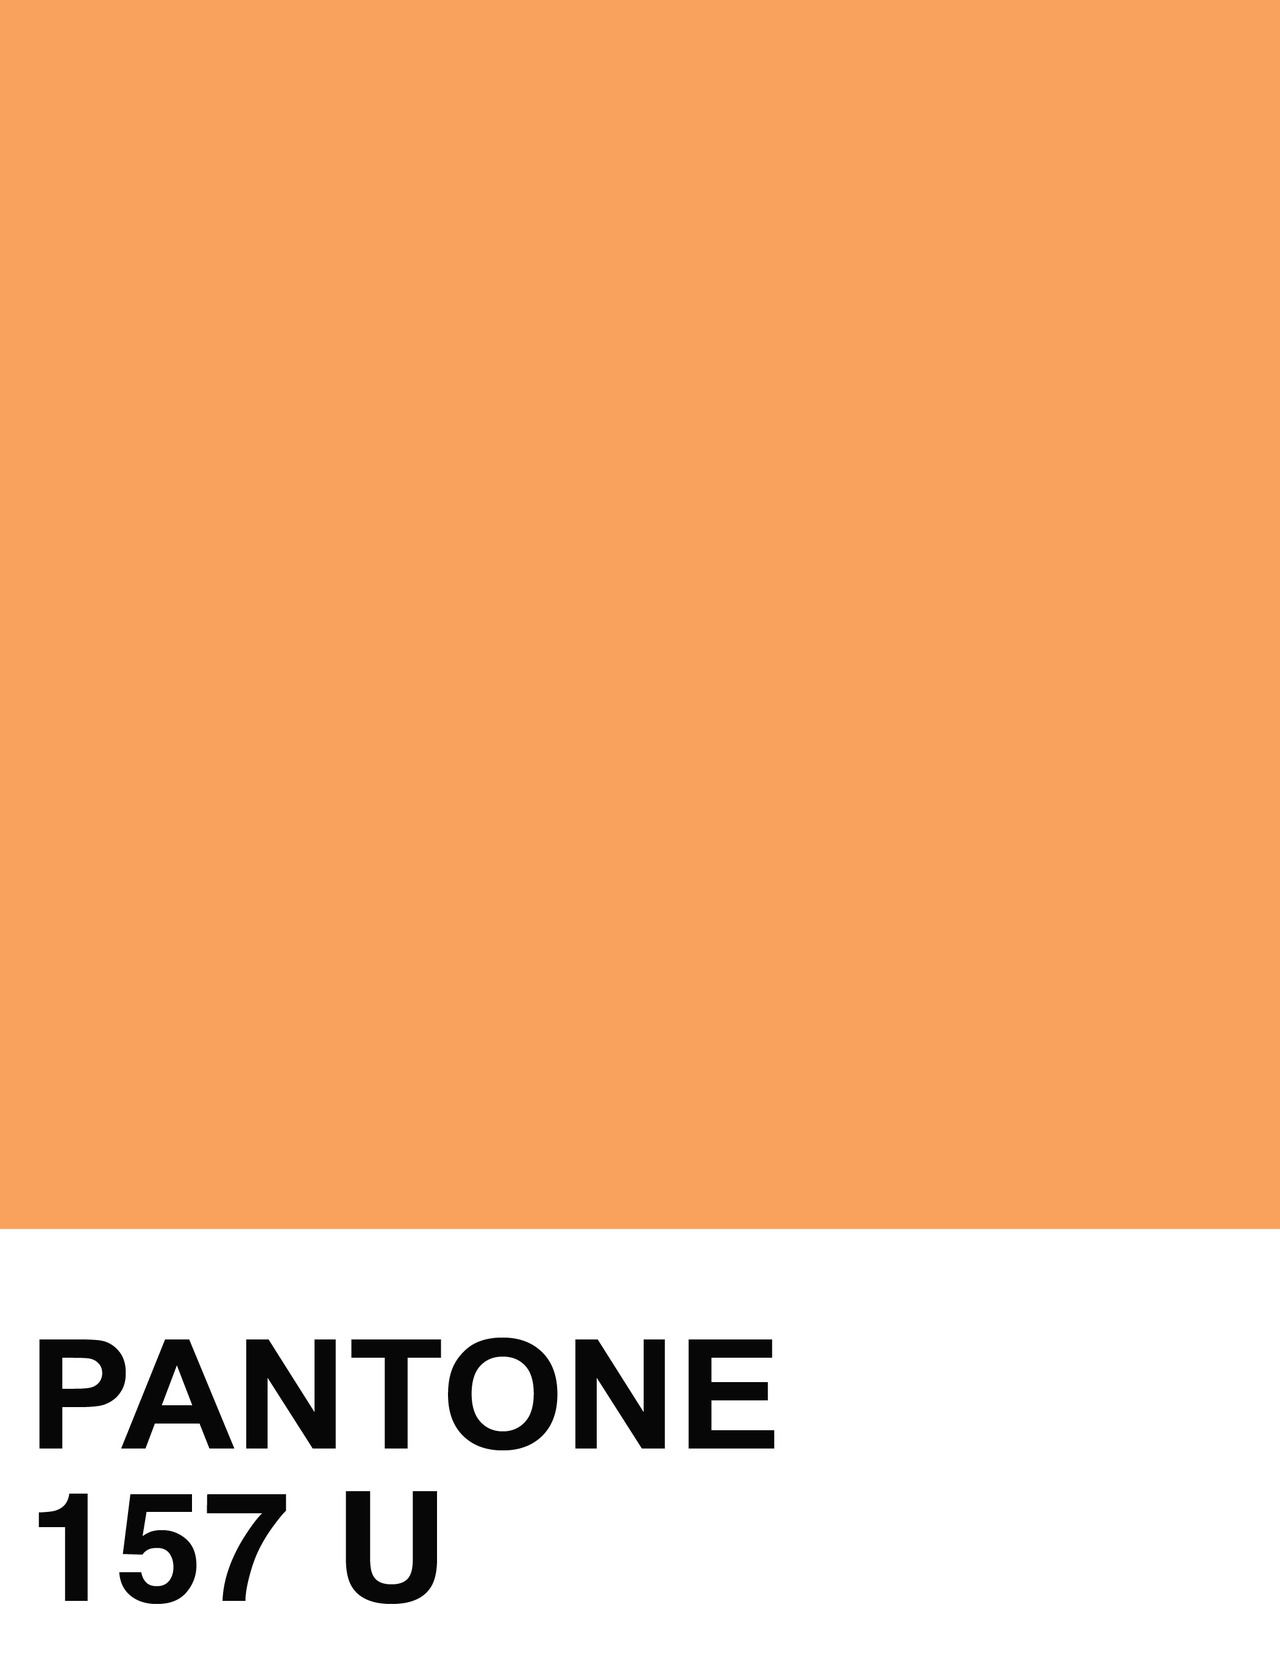 Pantone 157 u pantone pinterest pantone pantone solid uncoated color swatches for week love this color inspiration geenschuldenfo Choice Image